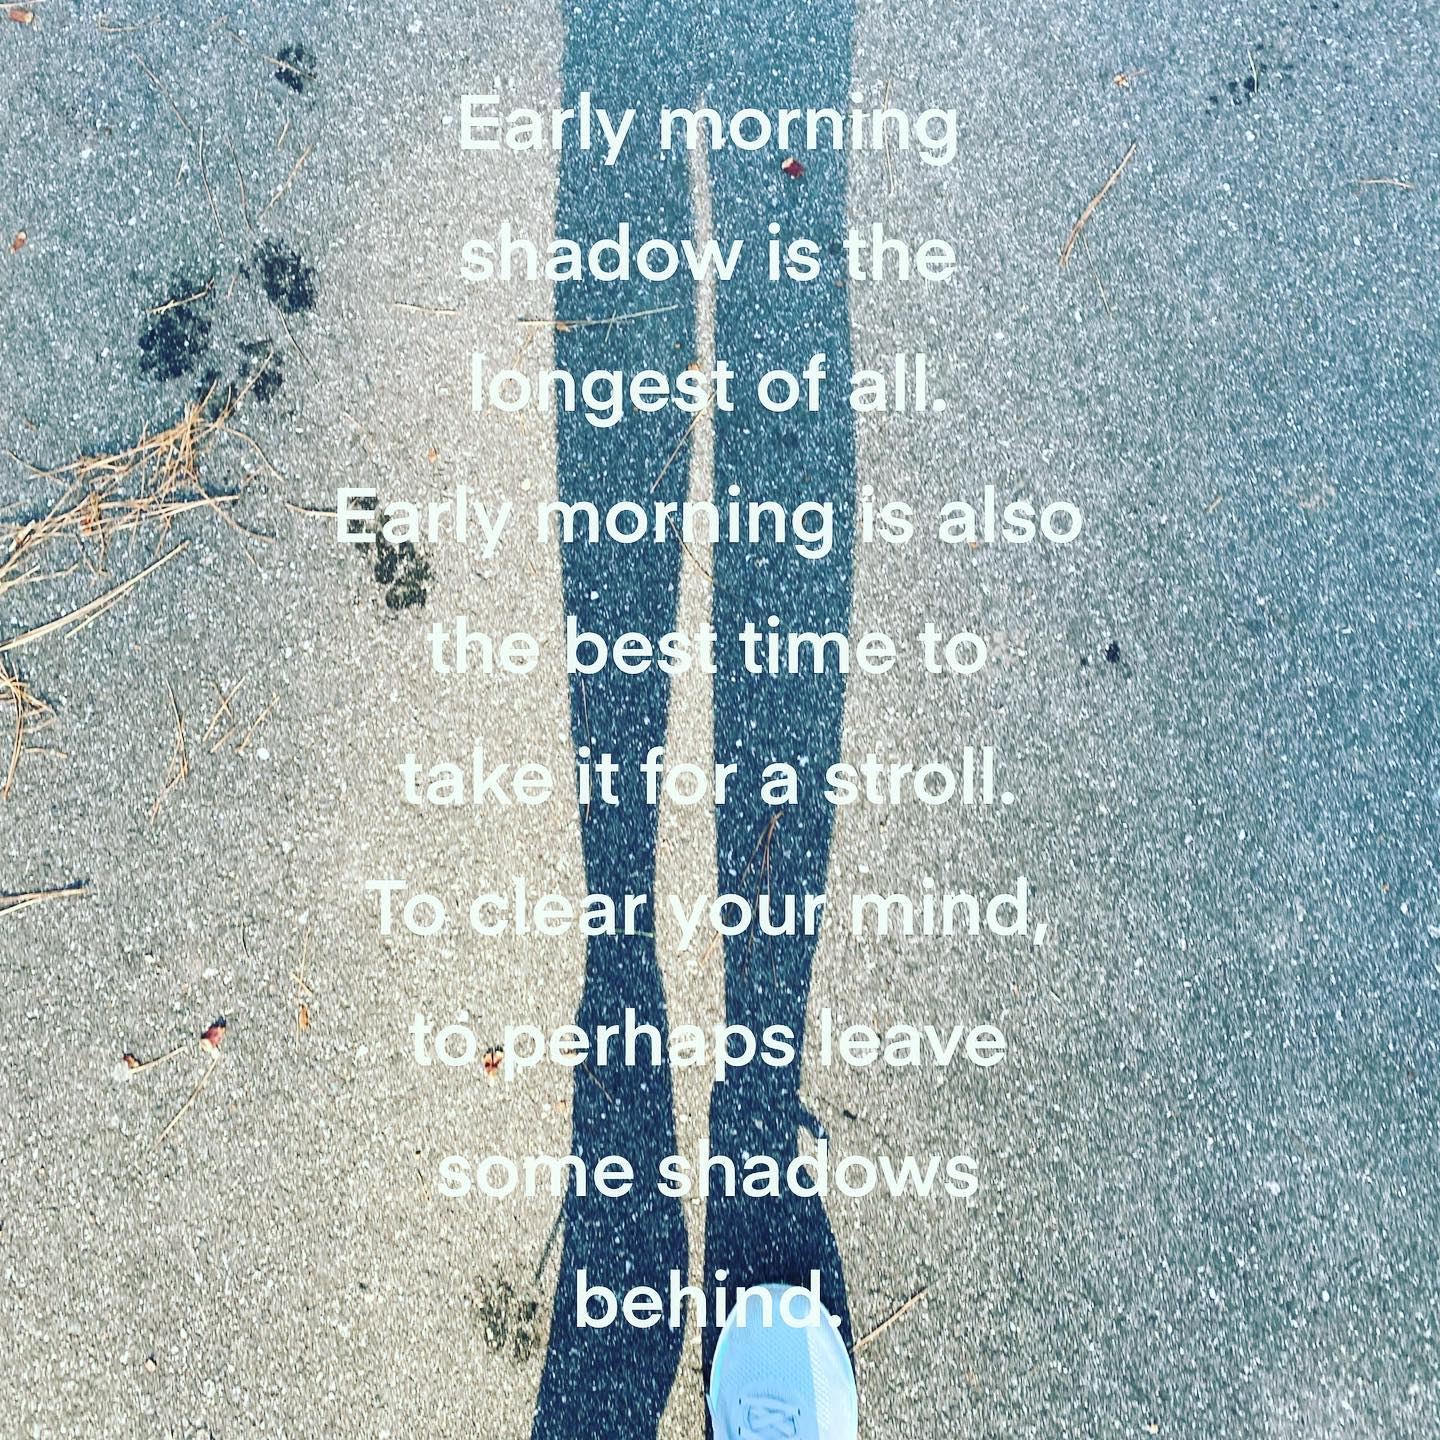 Early morning shadow is the longest of all.  Early morning is also the best time to take it for a stroll.  To clear your mind, to perhaps leave some shadows behind.